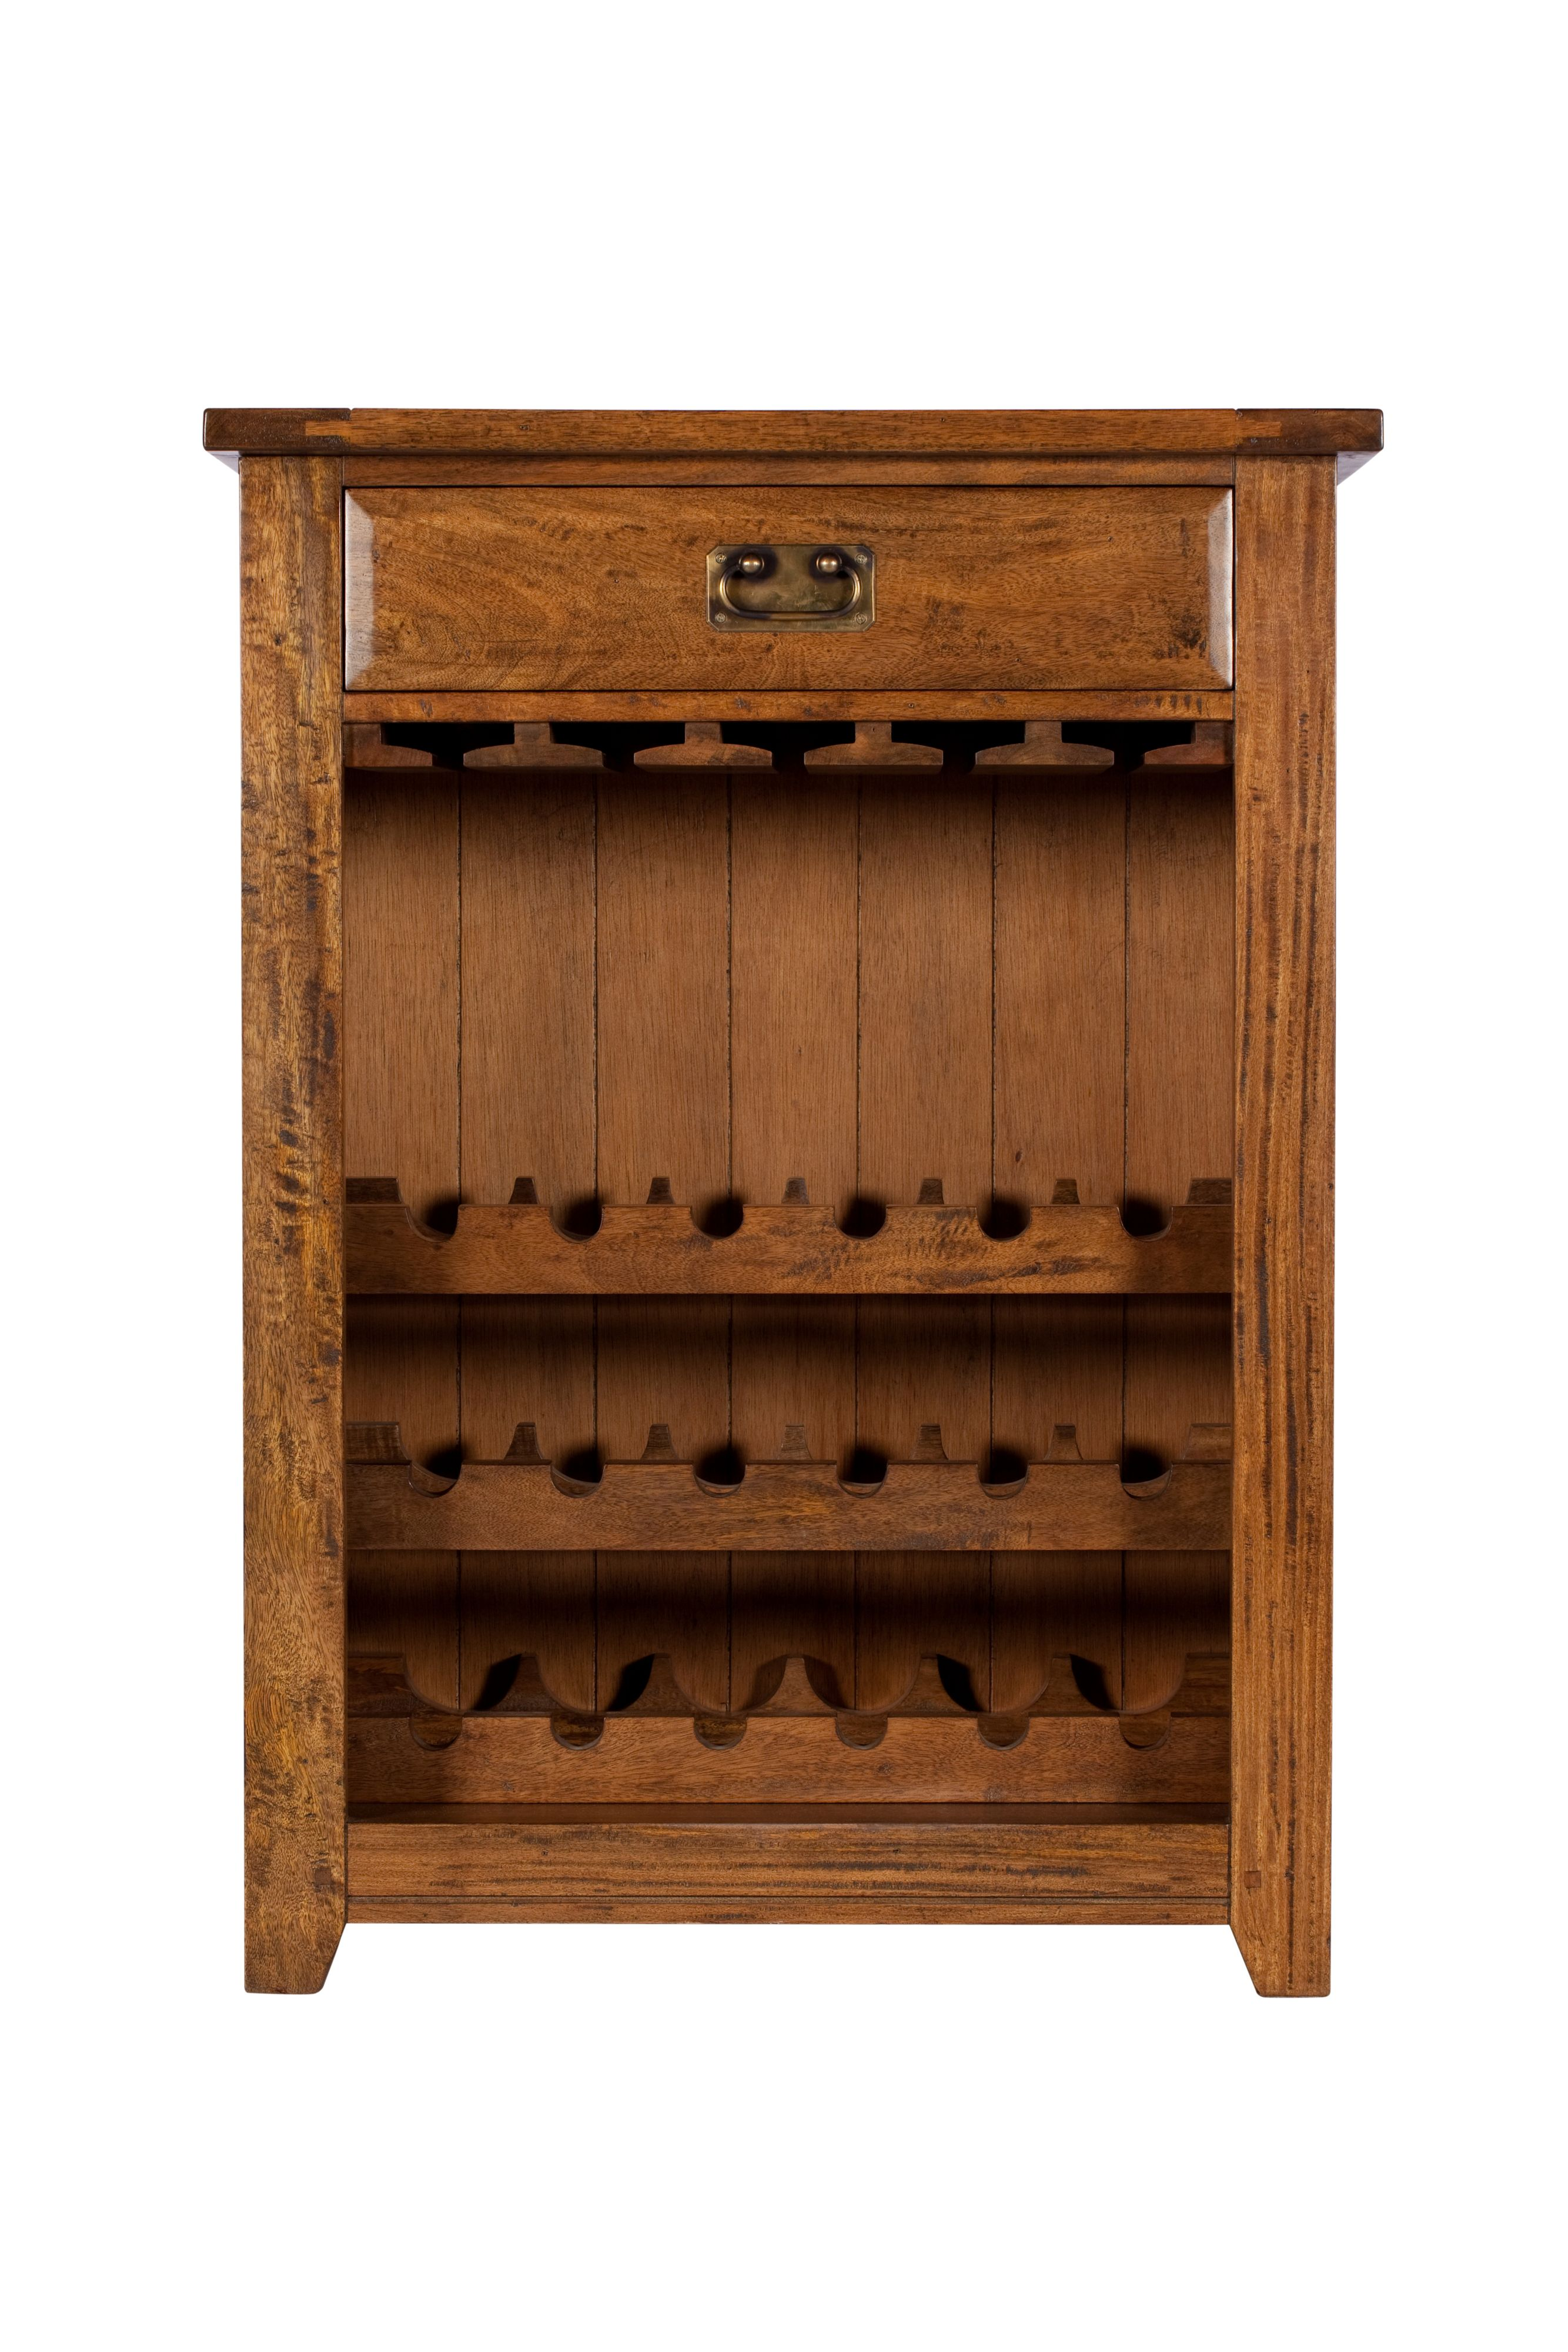 Marlborough wine cabinet